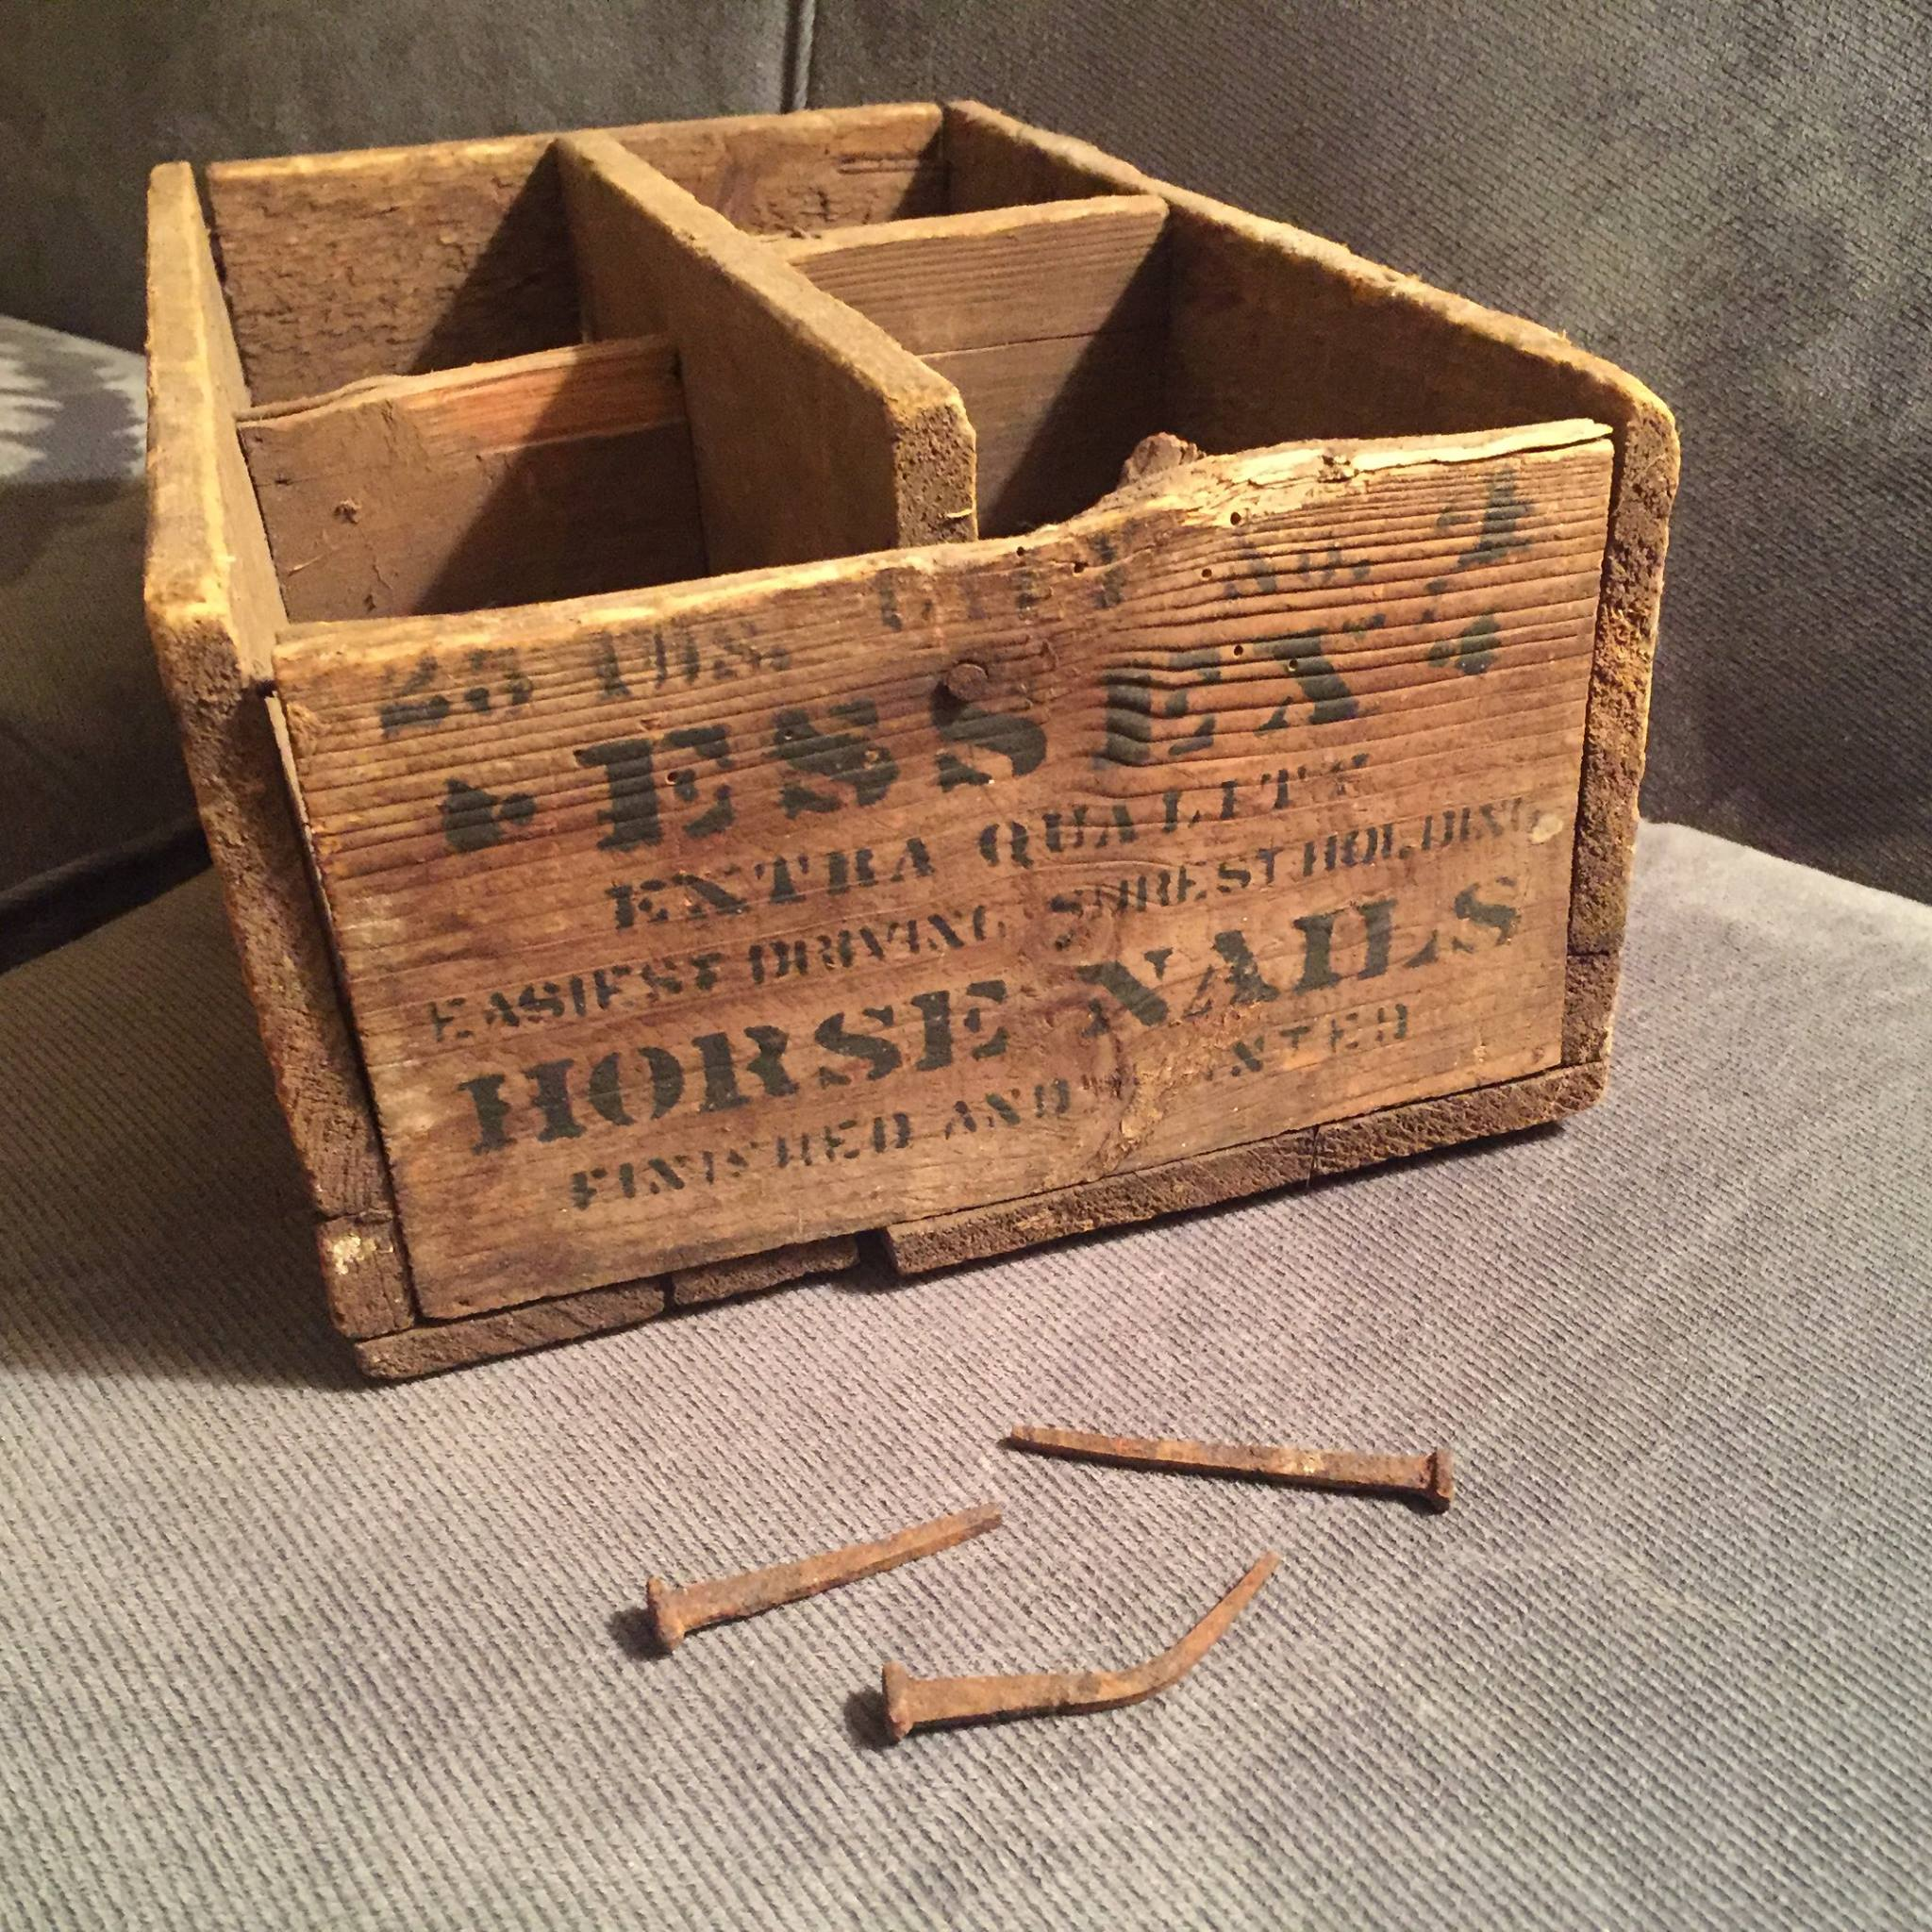 Essex horse nails box (and nails) from Essex Horseshoe Nail Factory (Source: Dianne Lansing)